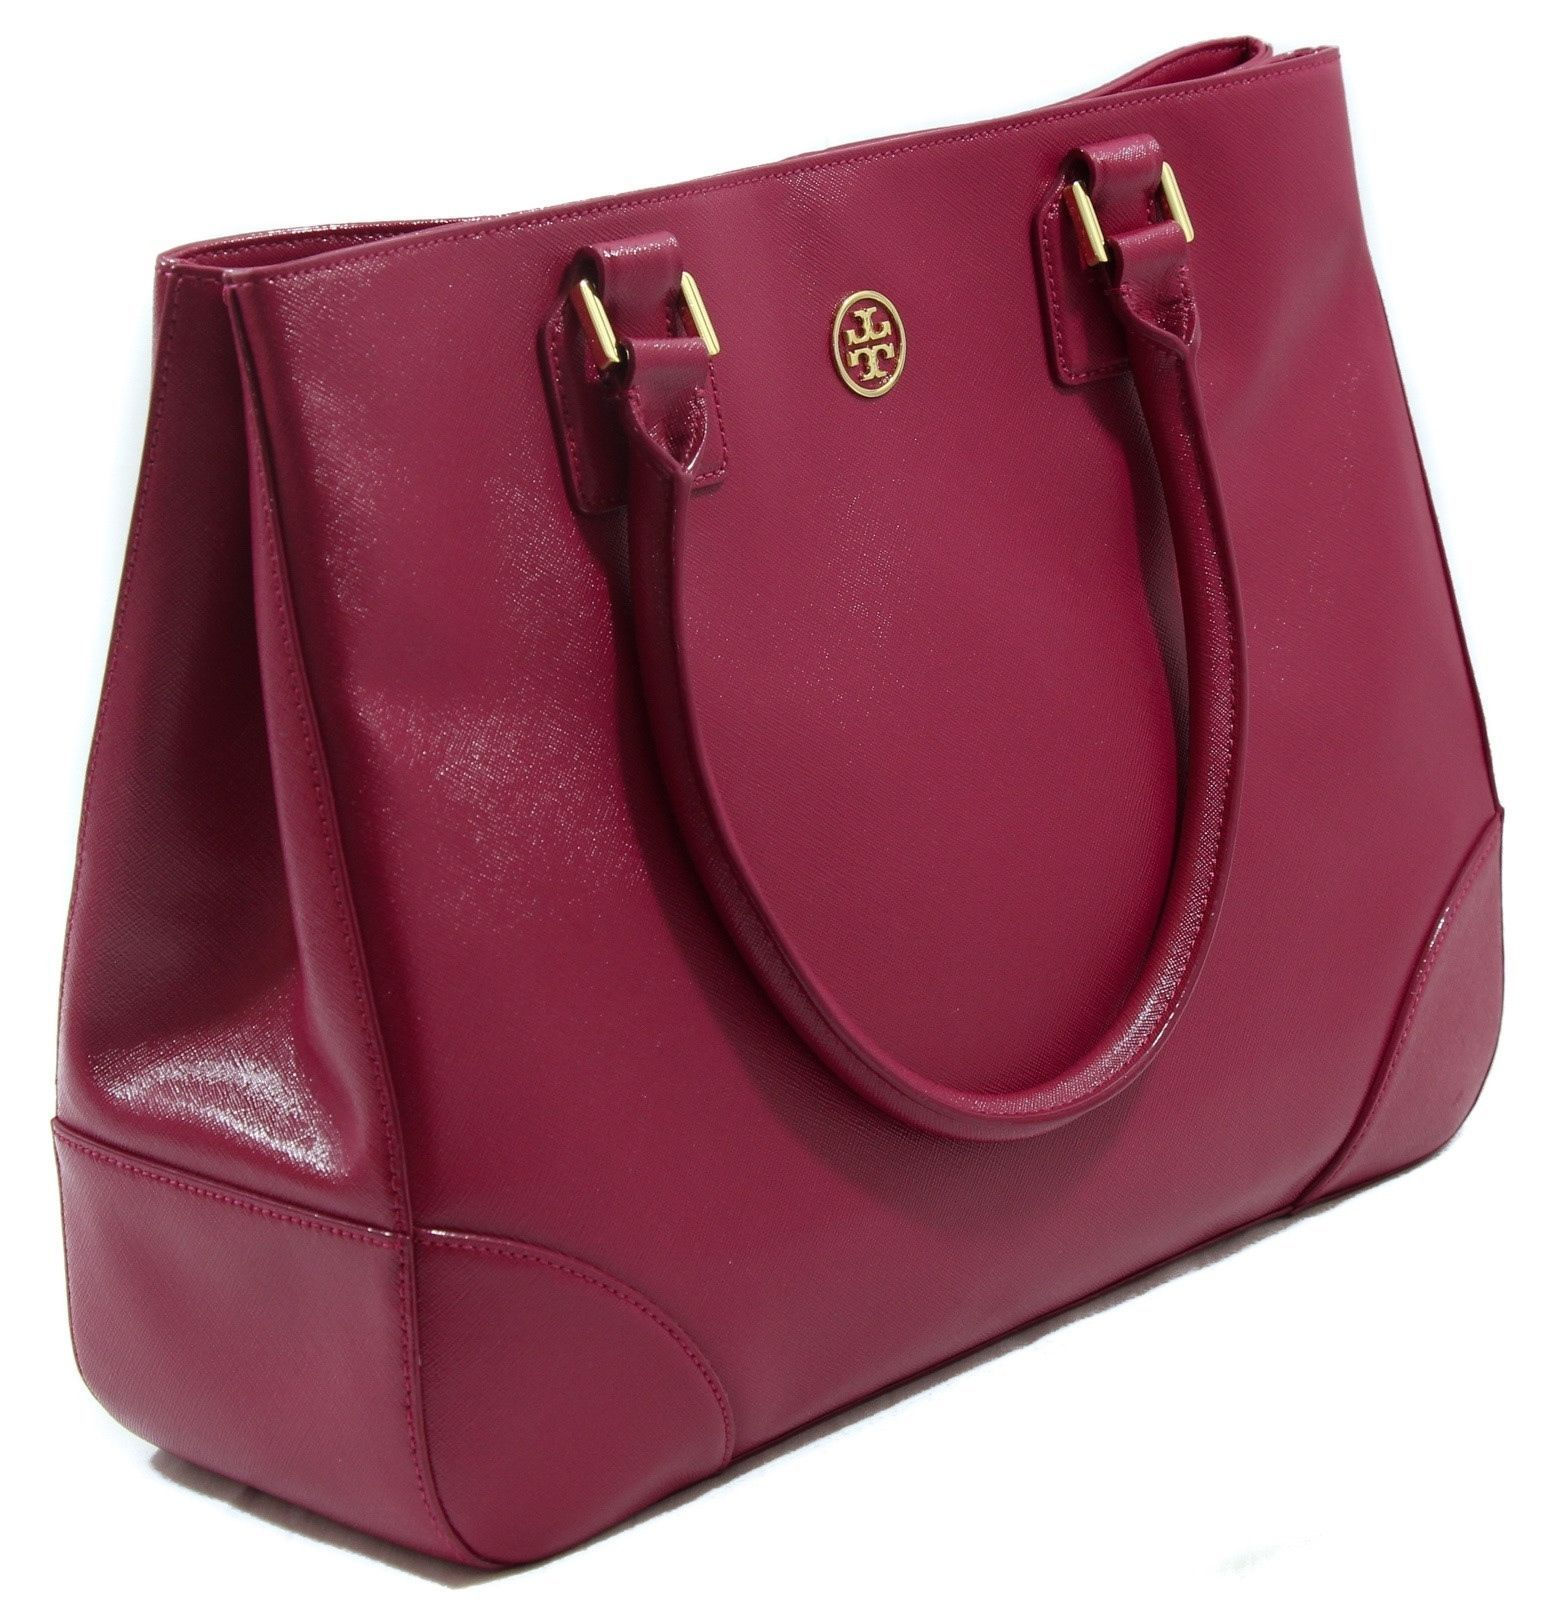 Tory Burch Robinson East West Leather Tote And 36 Similar Items Ronbinson Pebbled Mini Square Bag